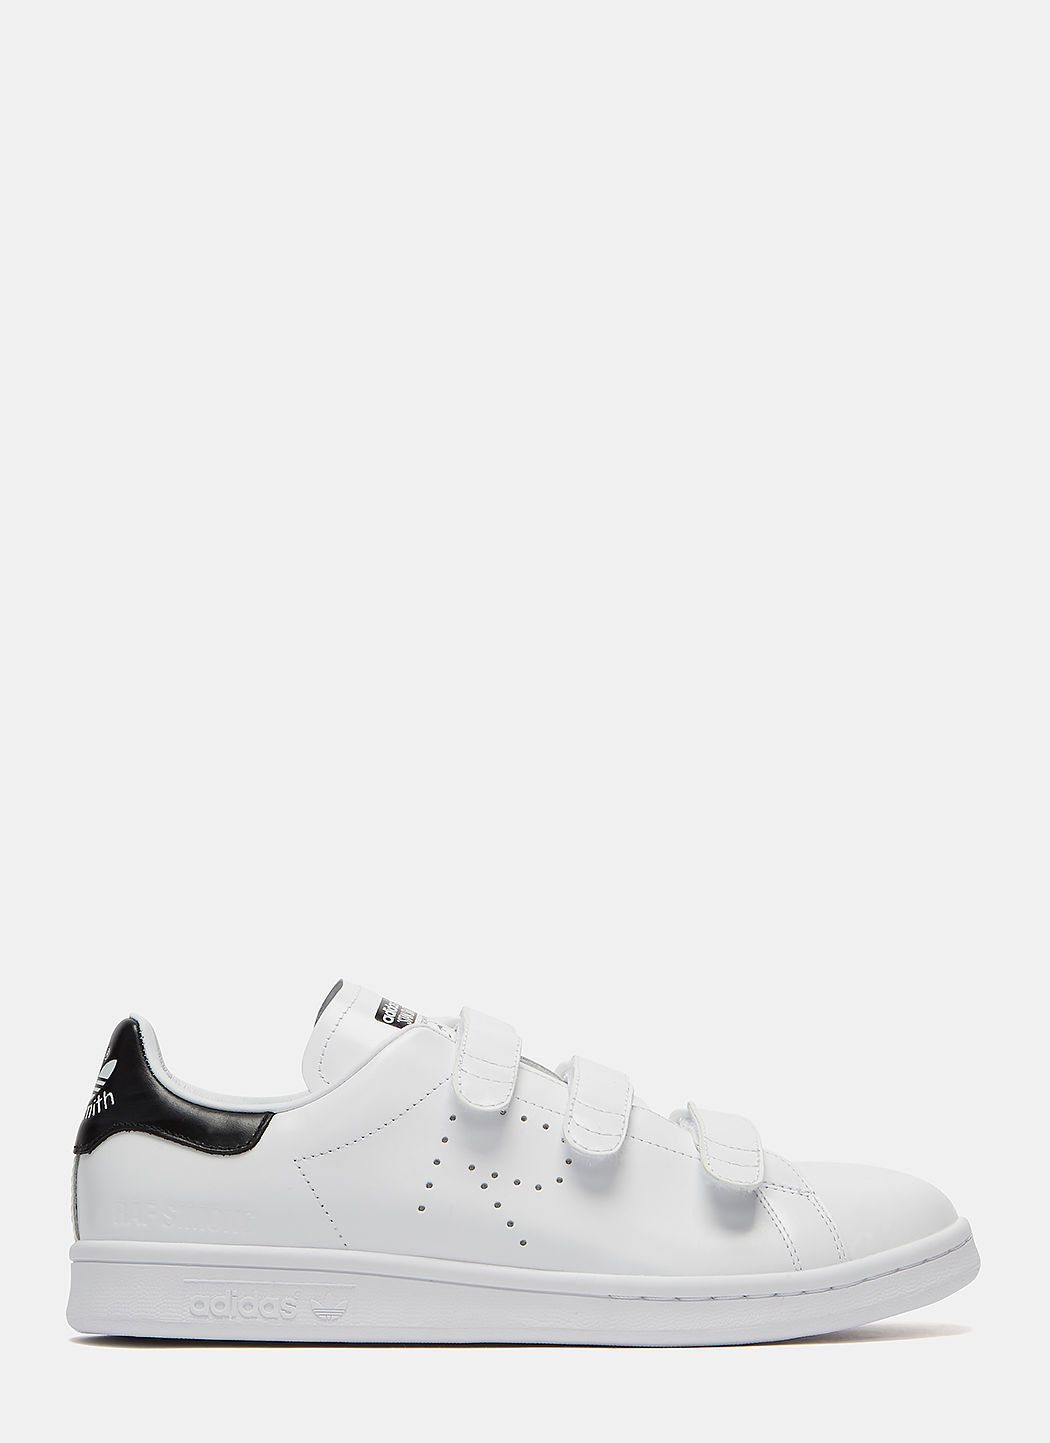 Raf Simons Unisex Metallic Velcro Strapped Stan Smith Comfort Sneakers In White Modesens Sneakers Men Fashion Sneakers Fashion Running Shoes For Men